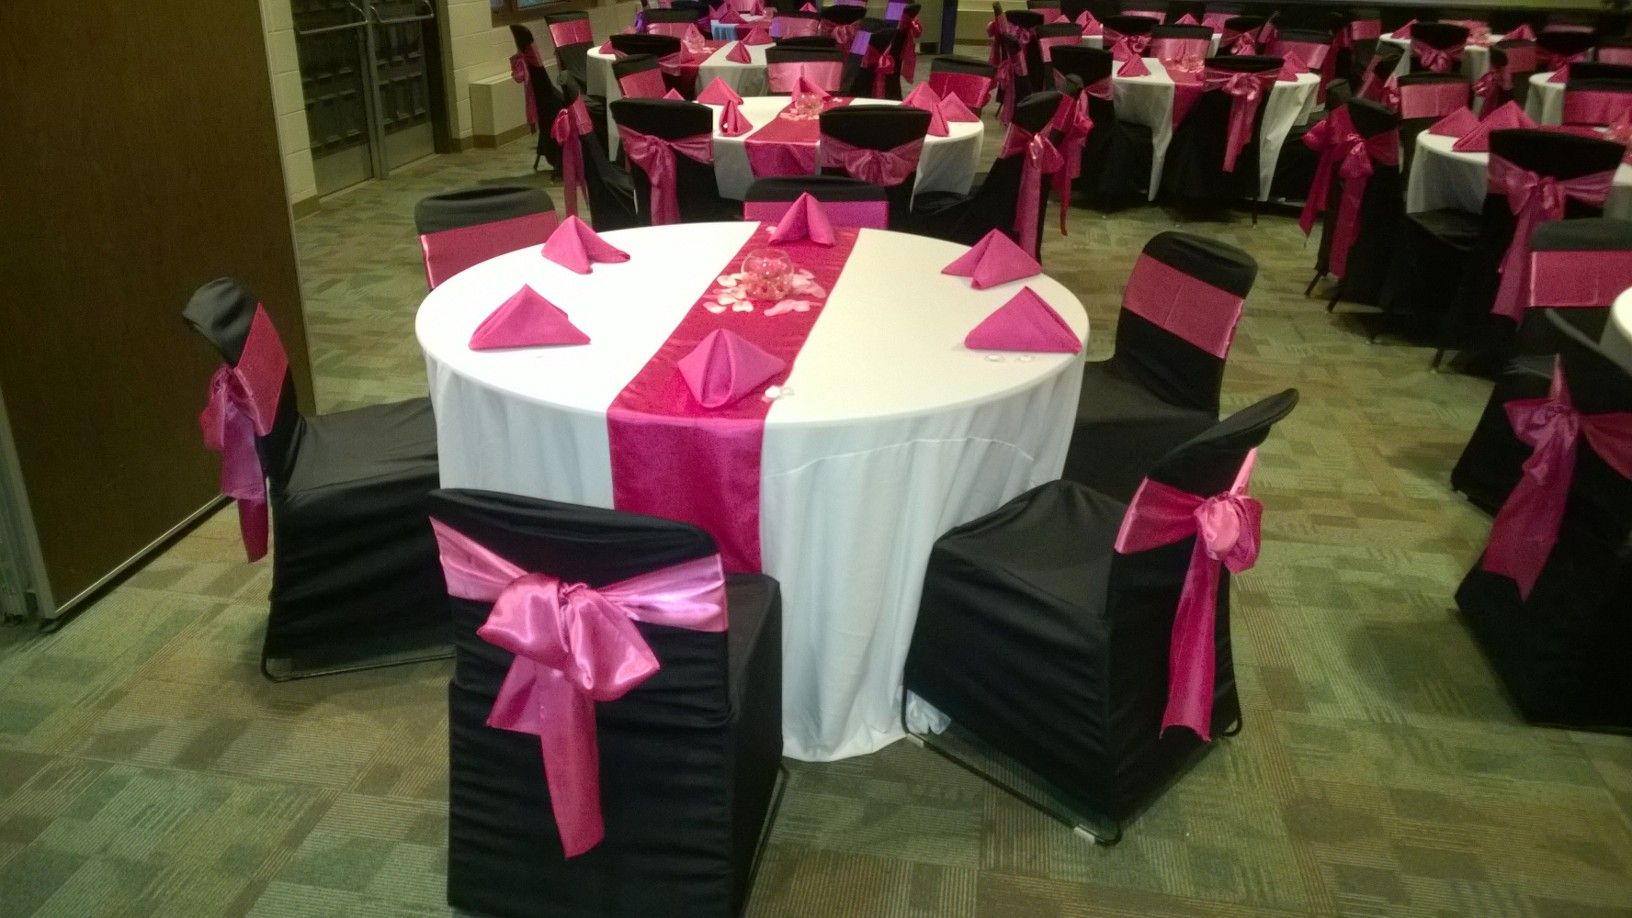 Black Chair Covers With Hot Pink Satin Sashes (traditional Bow), White Table  Linens